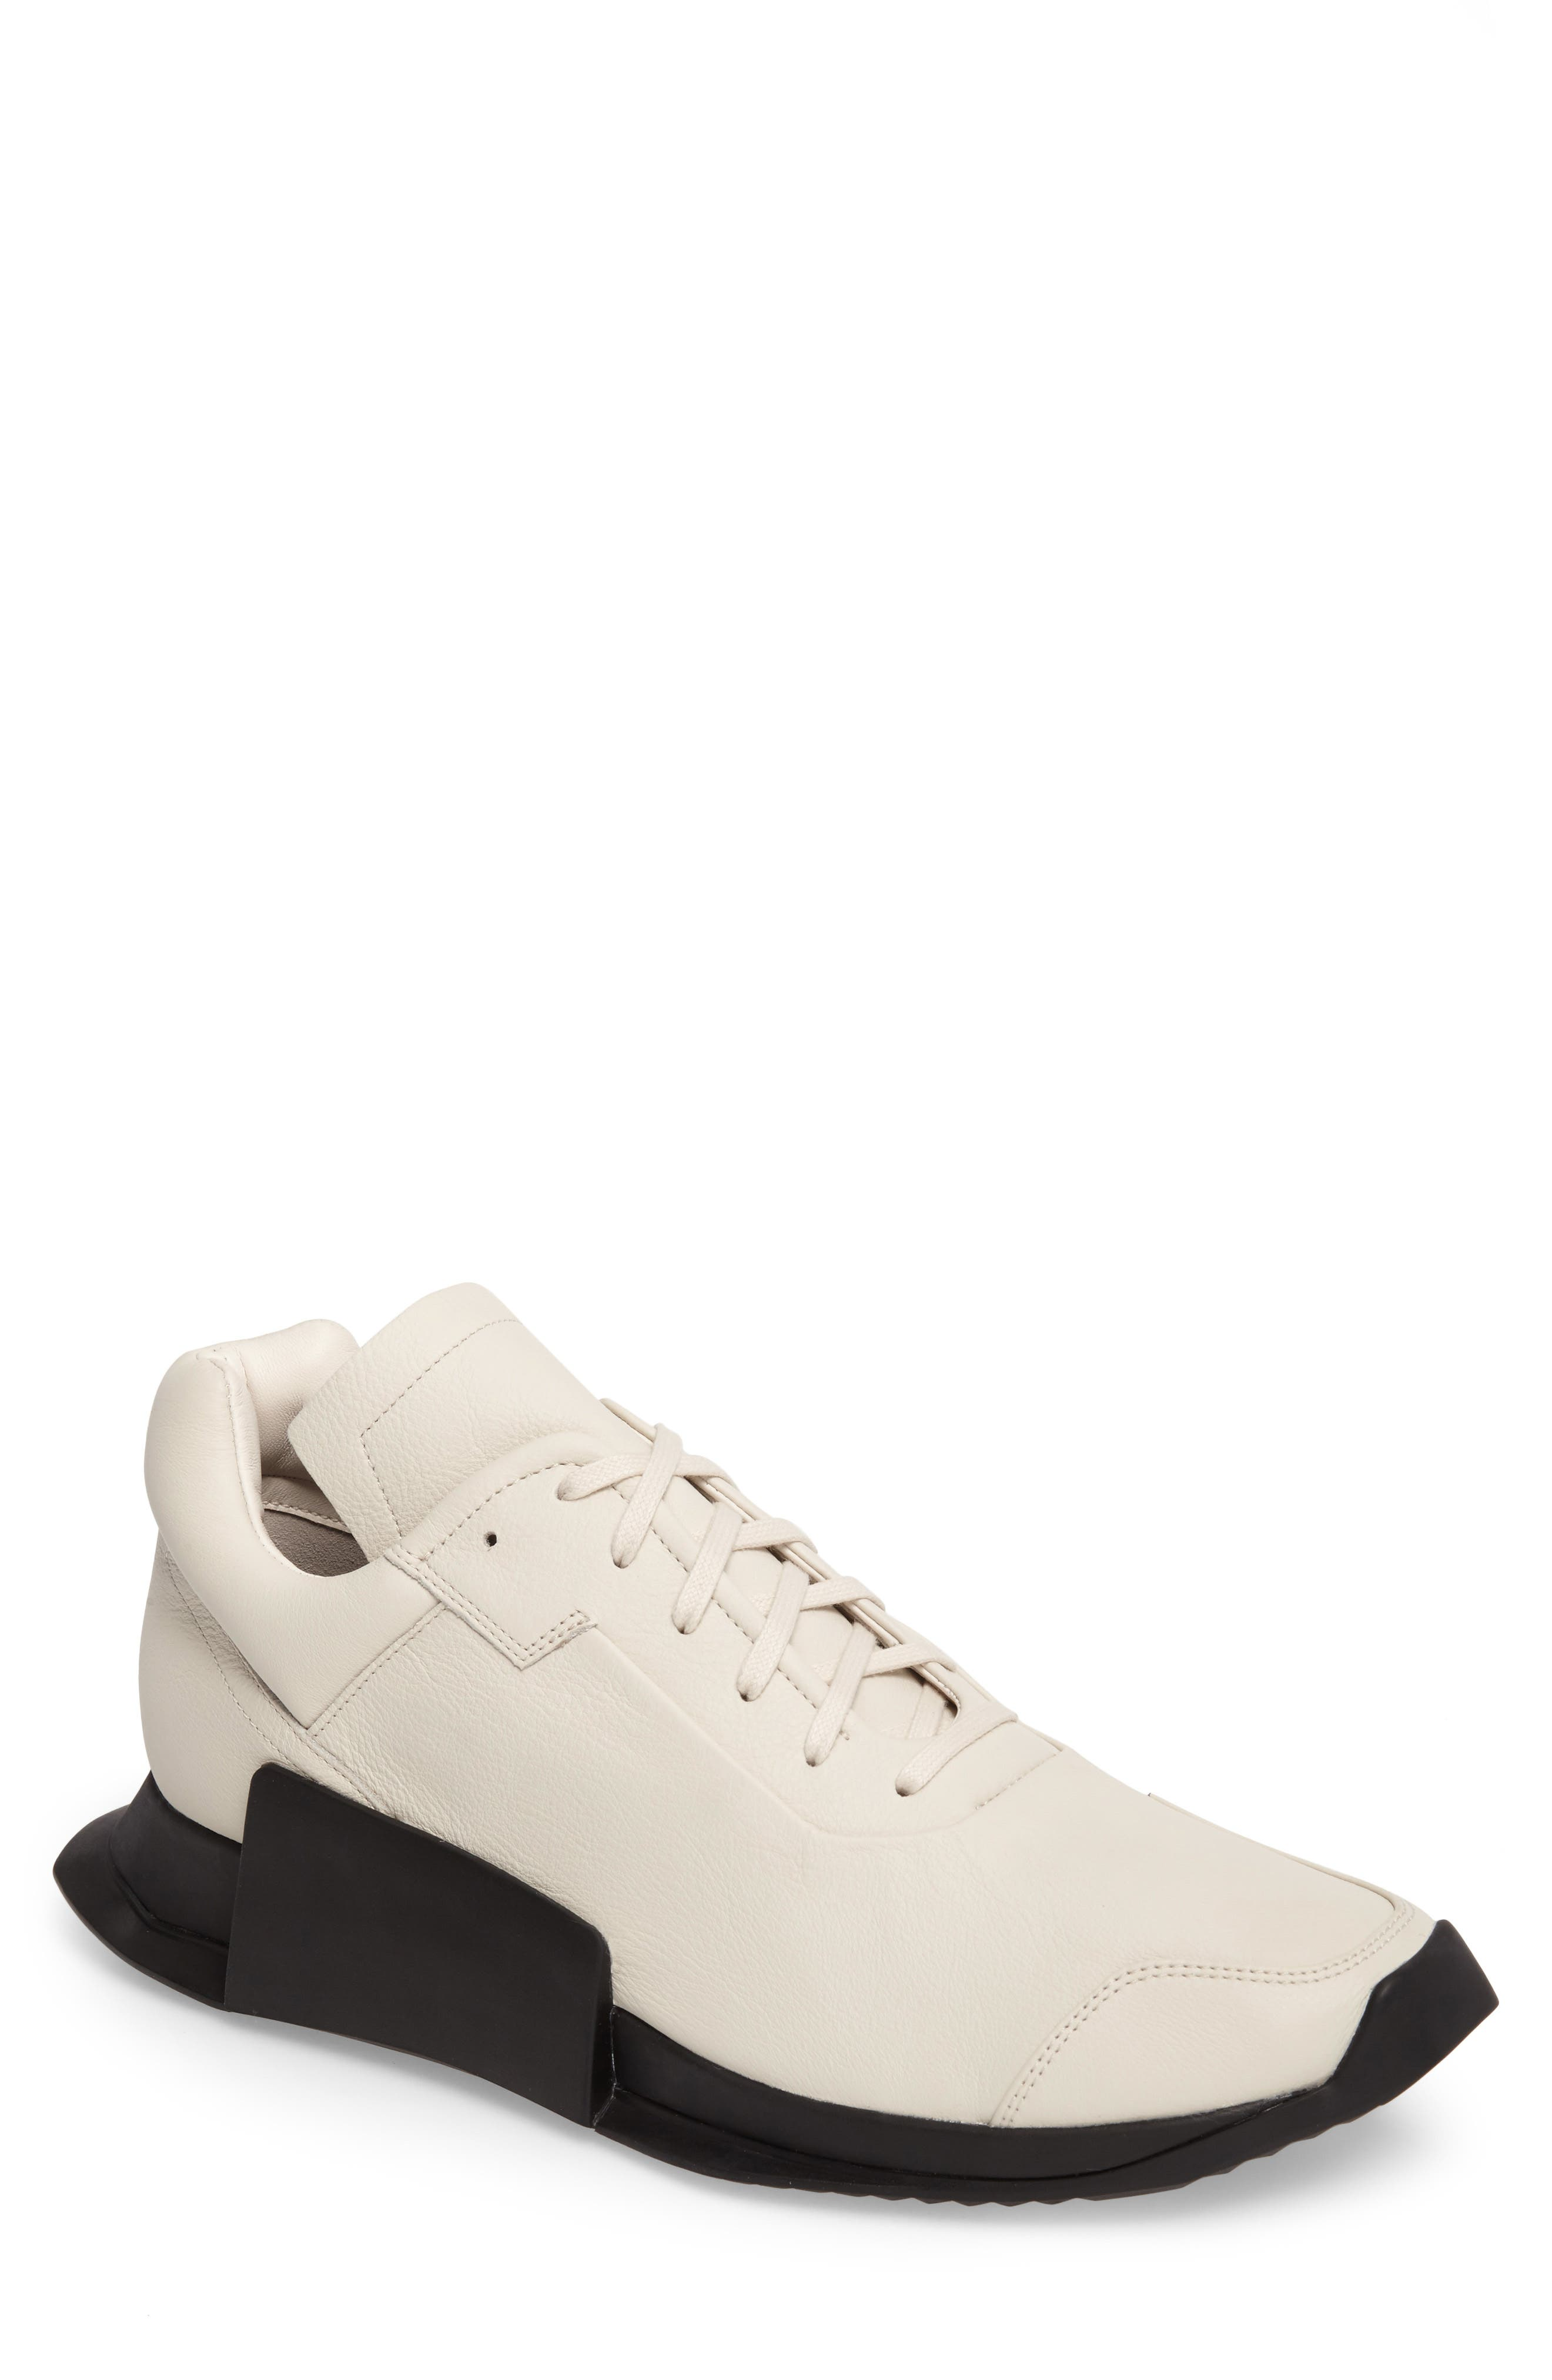 Alternate Image 1 Selected - Rick Owens by adidas New Runner Boost Sneaker (Men)